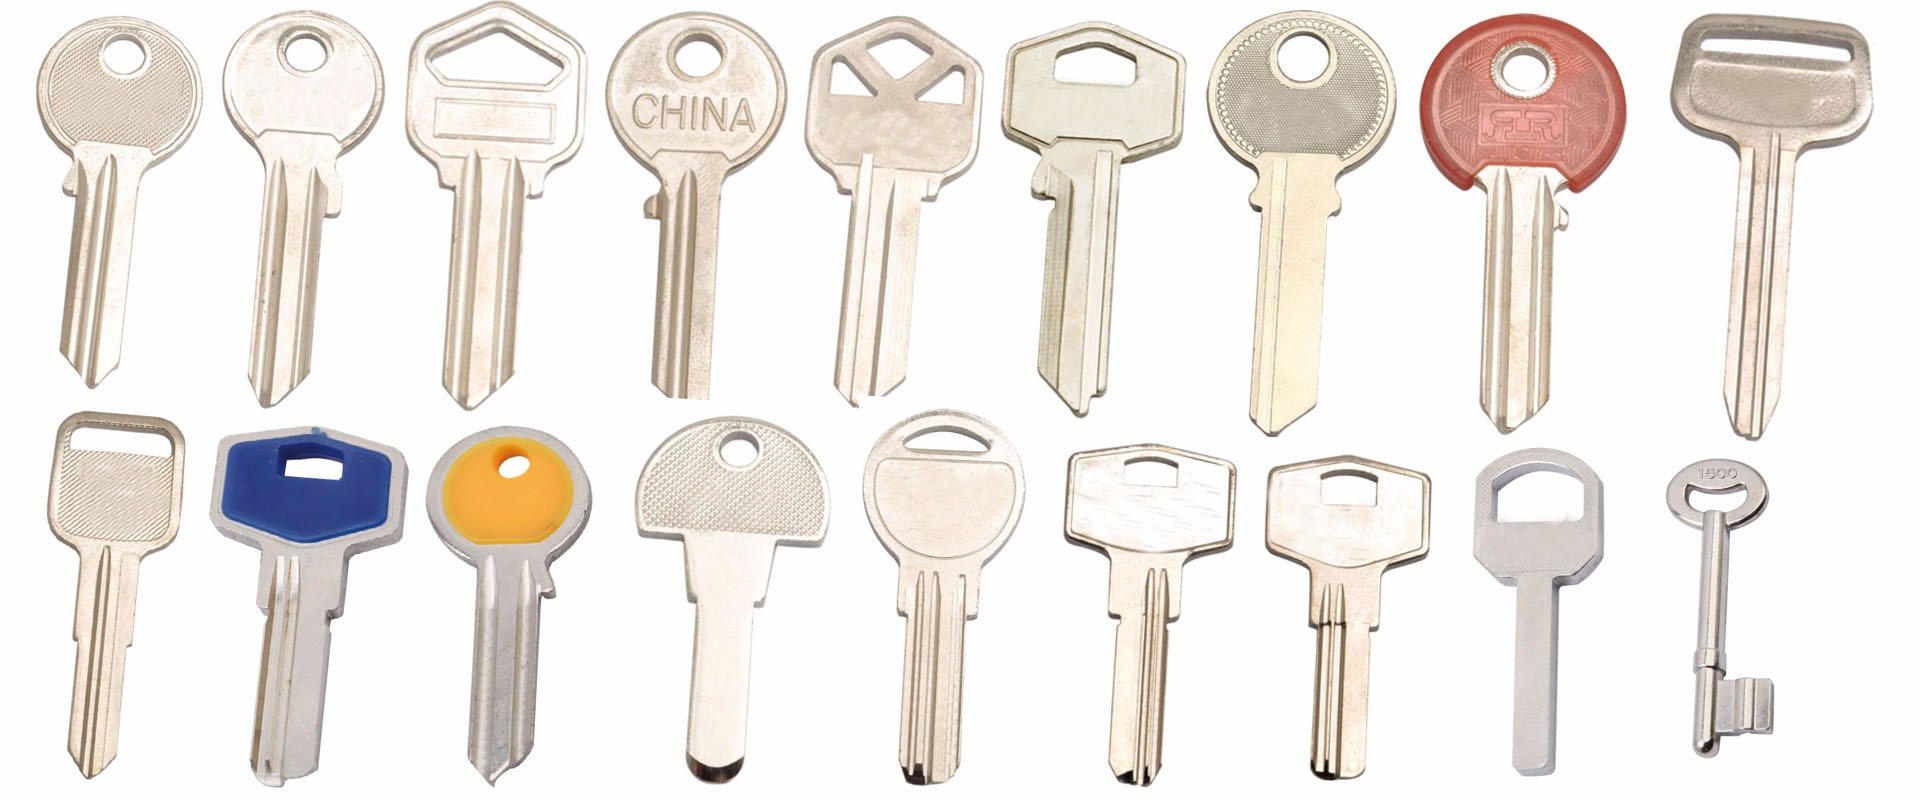 House key blanks